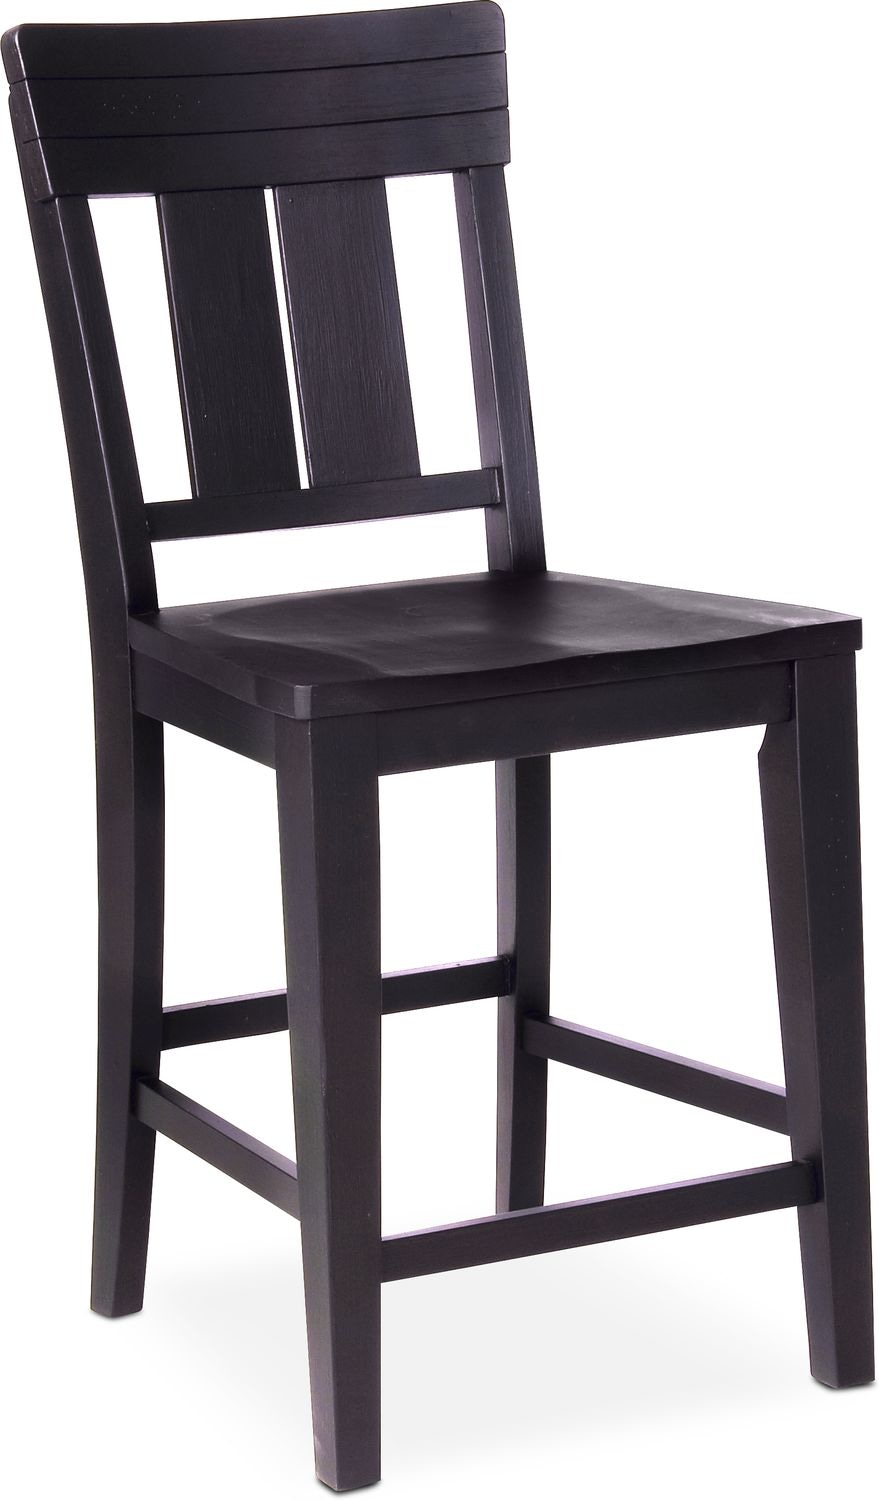 New Haven Counter Height Slat Back Stool Black Value City